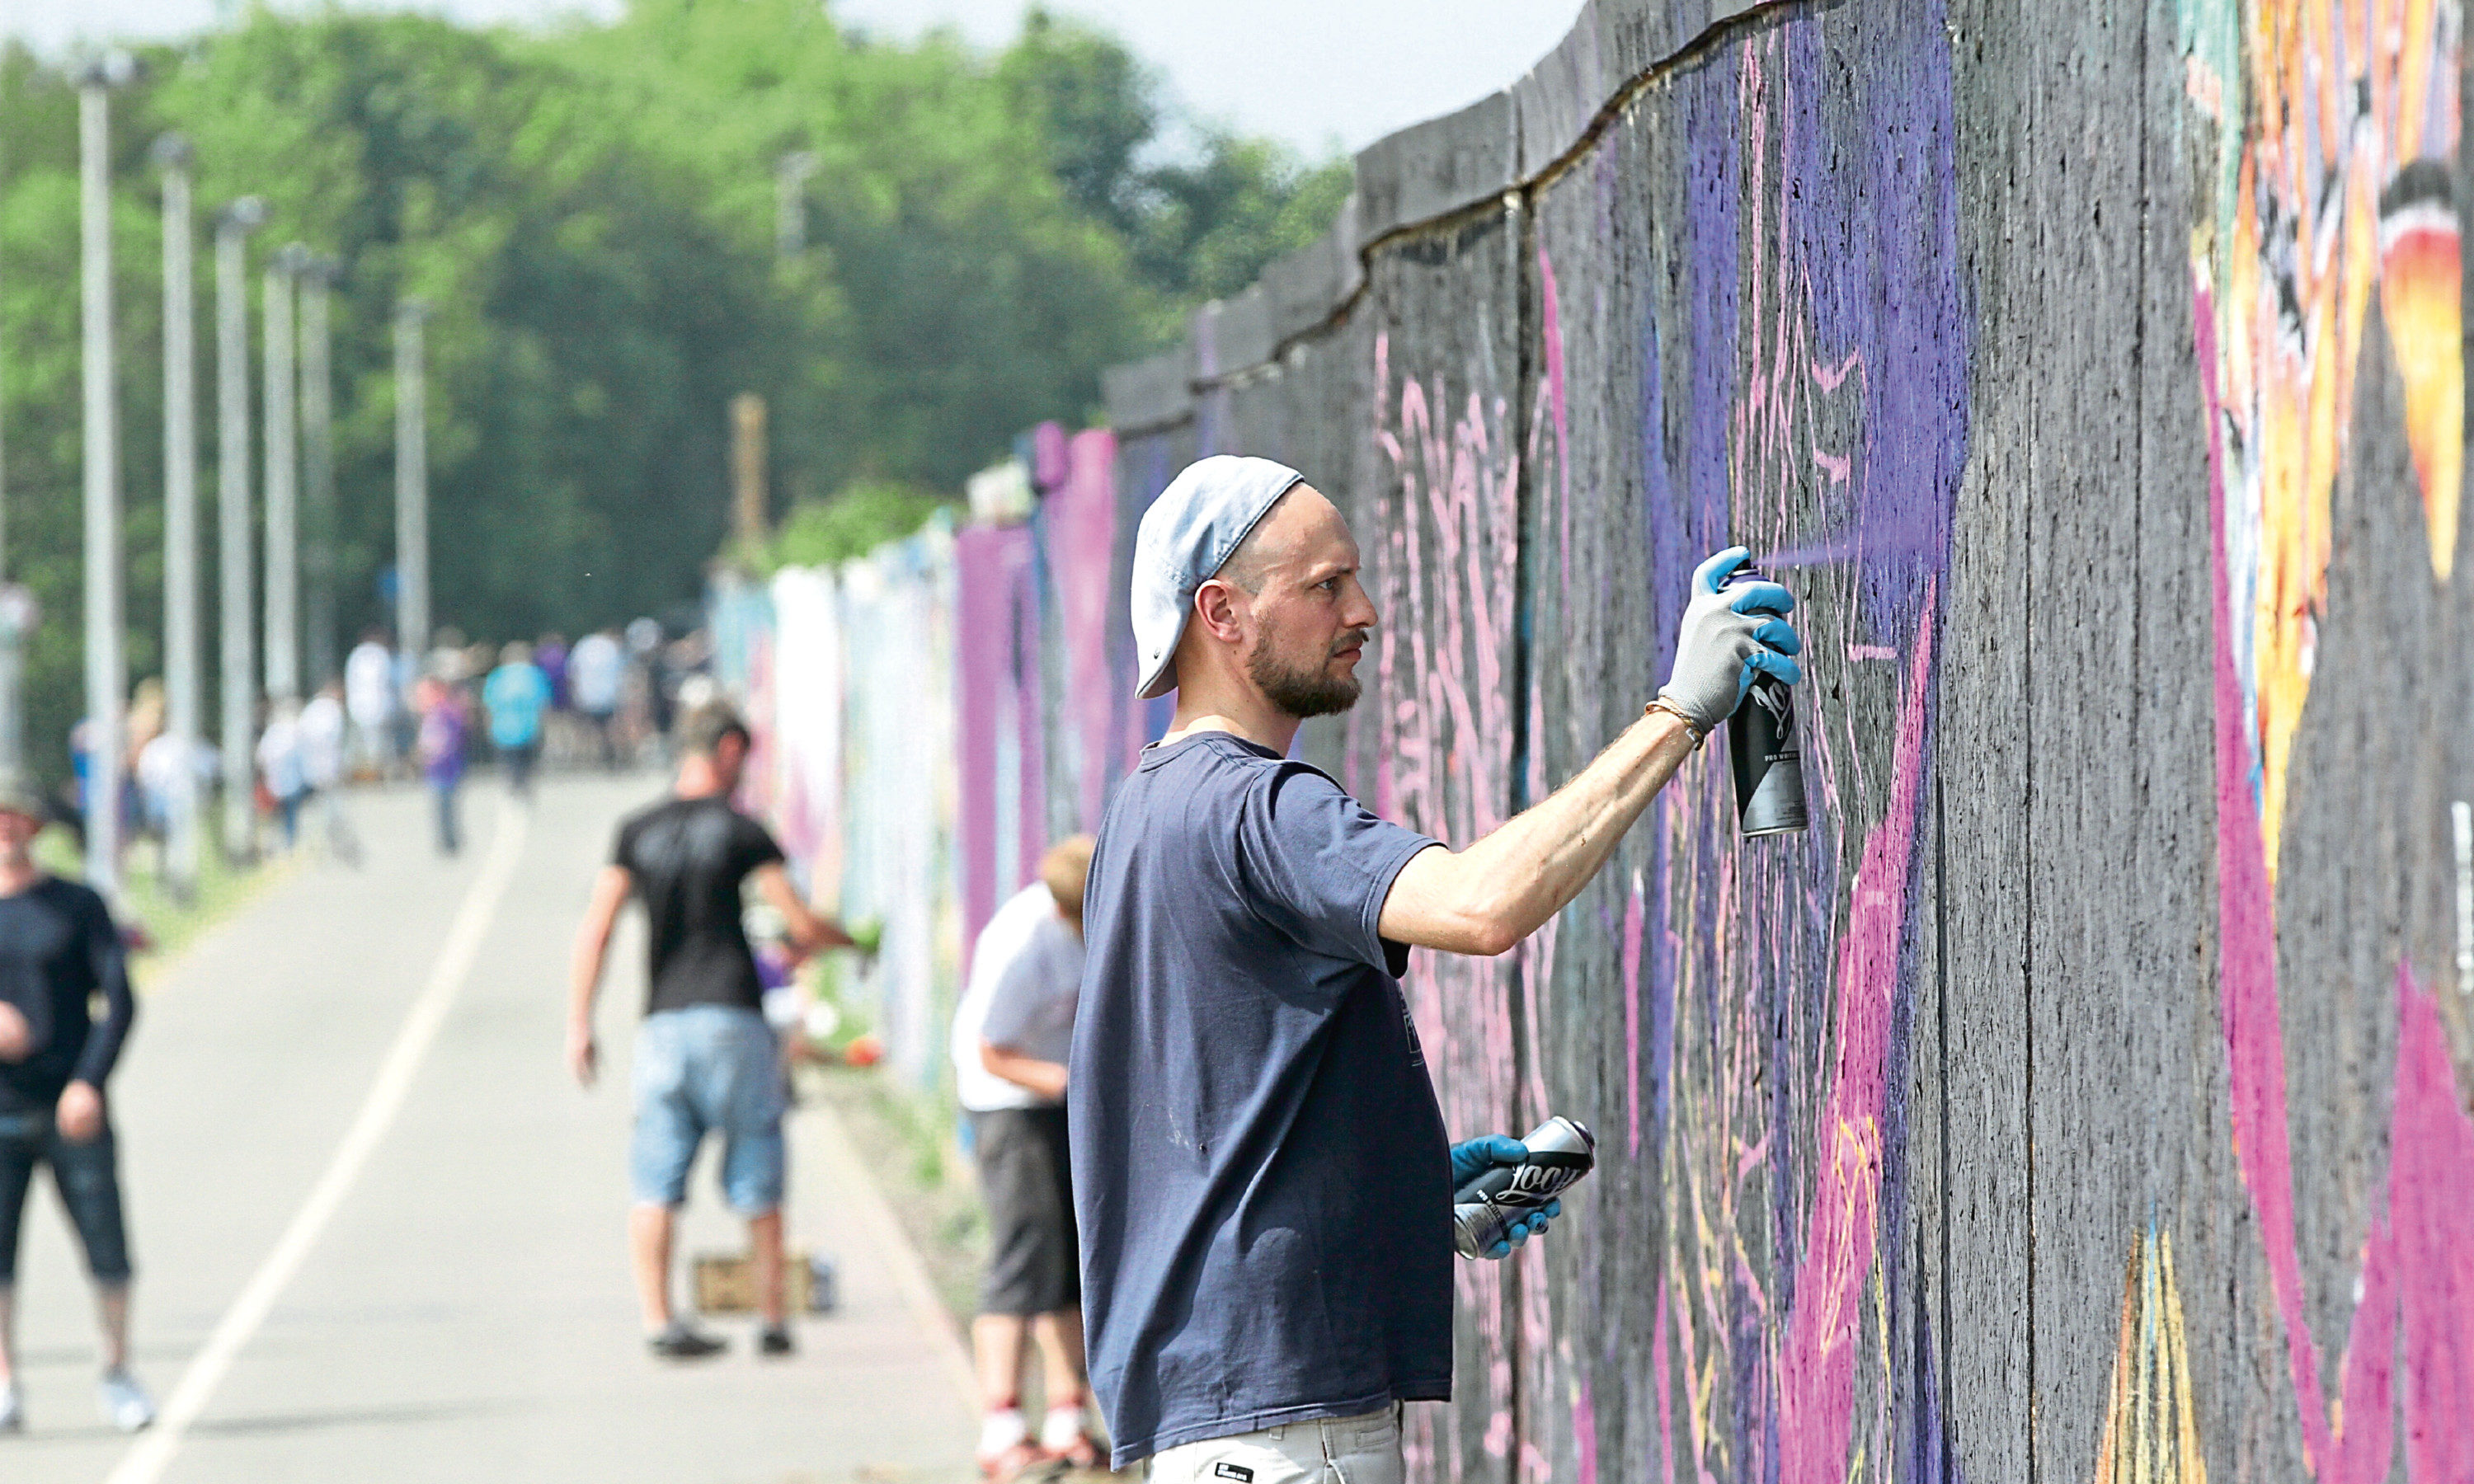 Graffiti artists at last year's event.